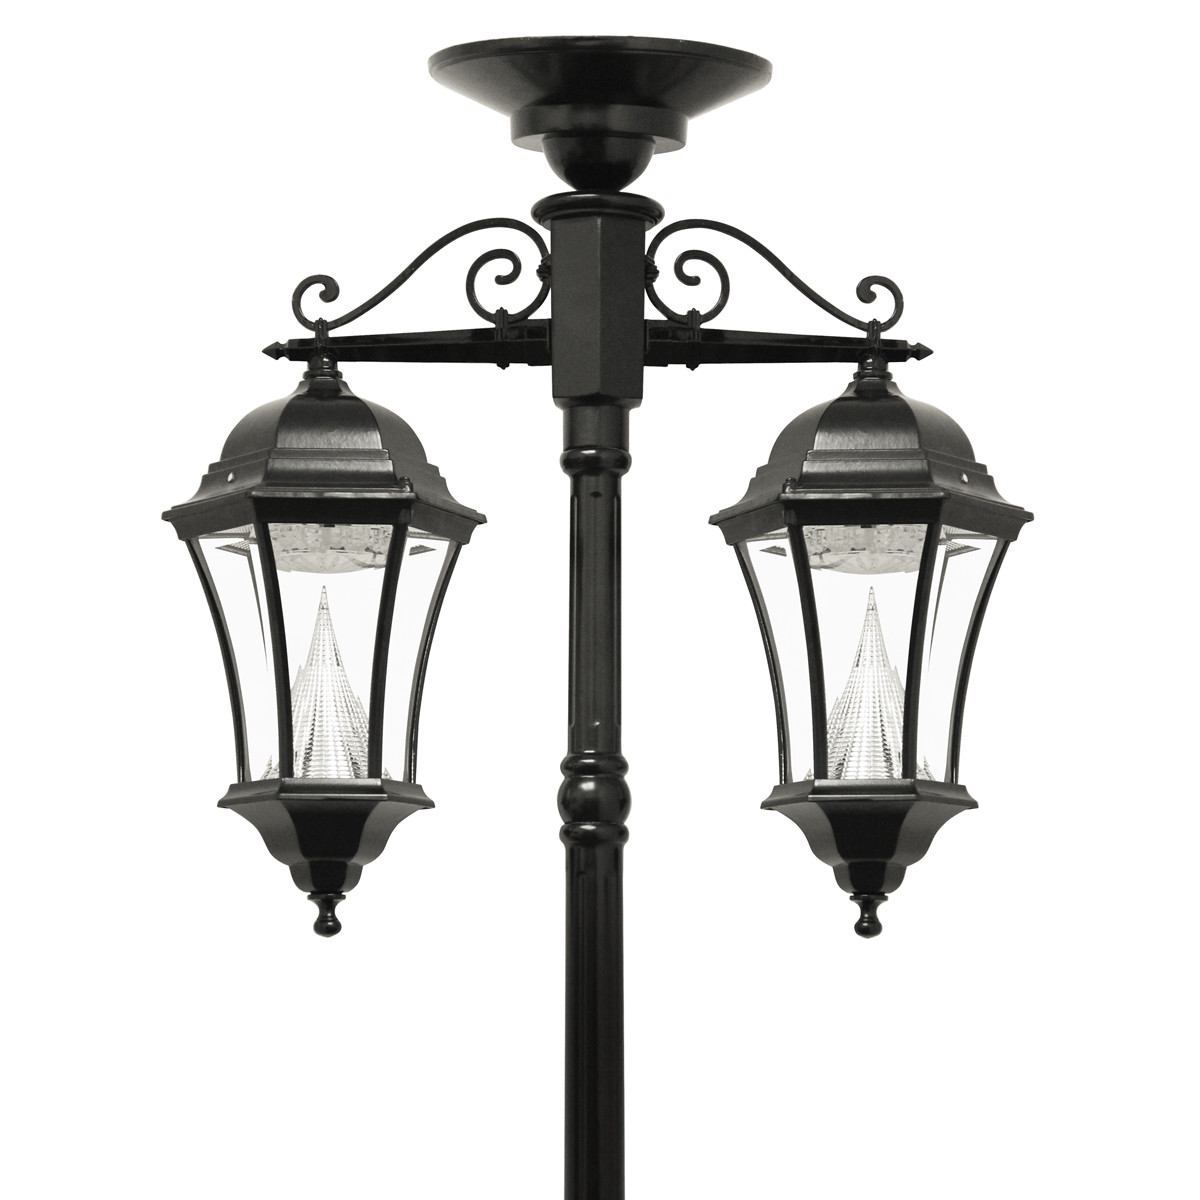 Best ideas about Solar Lamp Post Lights . Save or Pin Victorian Solar Lamp Series – Double Downward Hanging Lamp Now.